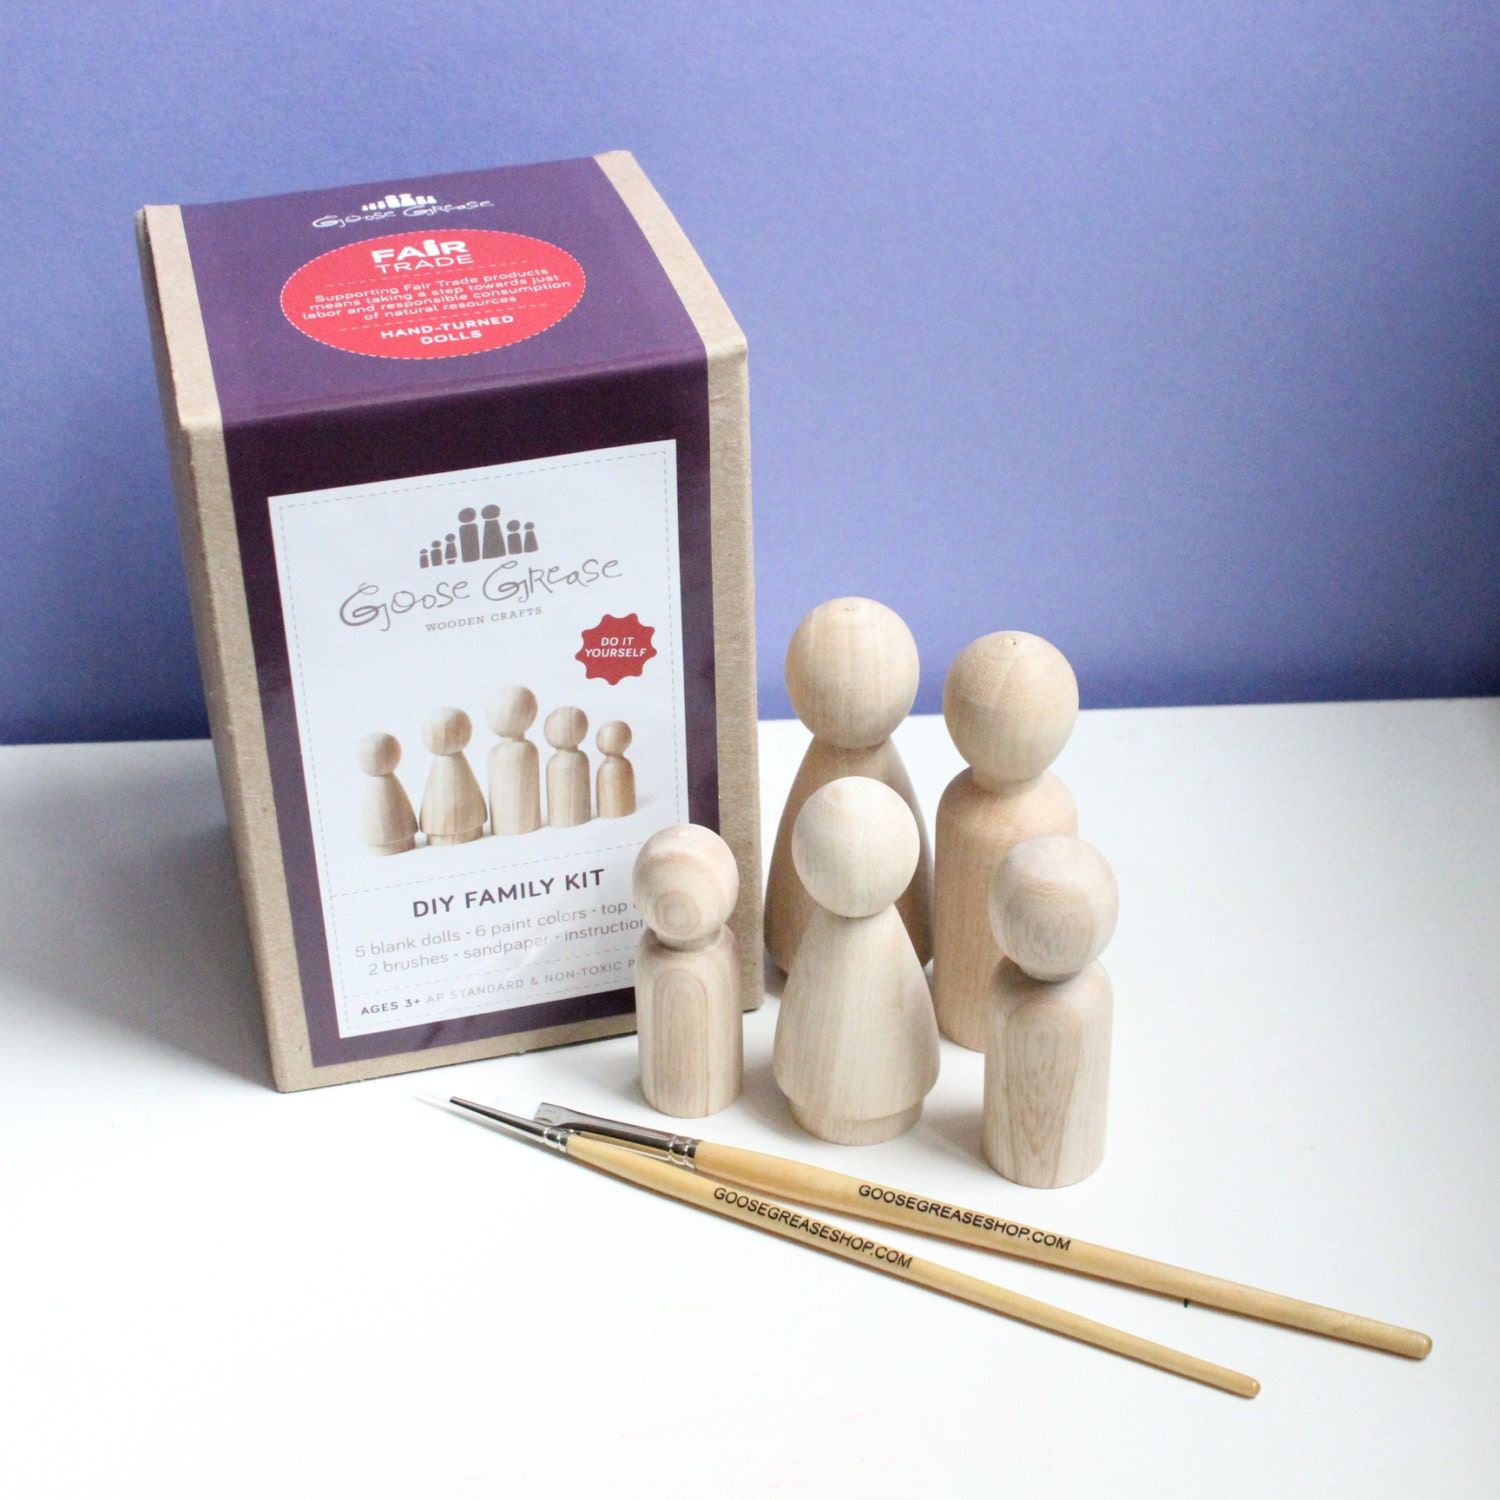 Wooden dolls peg dolls custom family portrait diy kit do it etsy zoom solutioingenieria